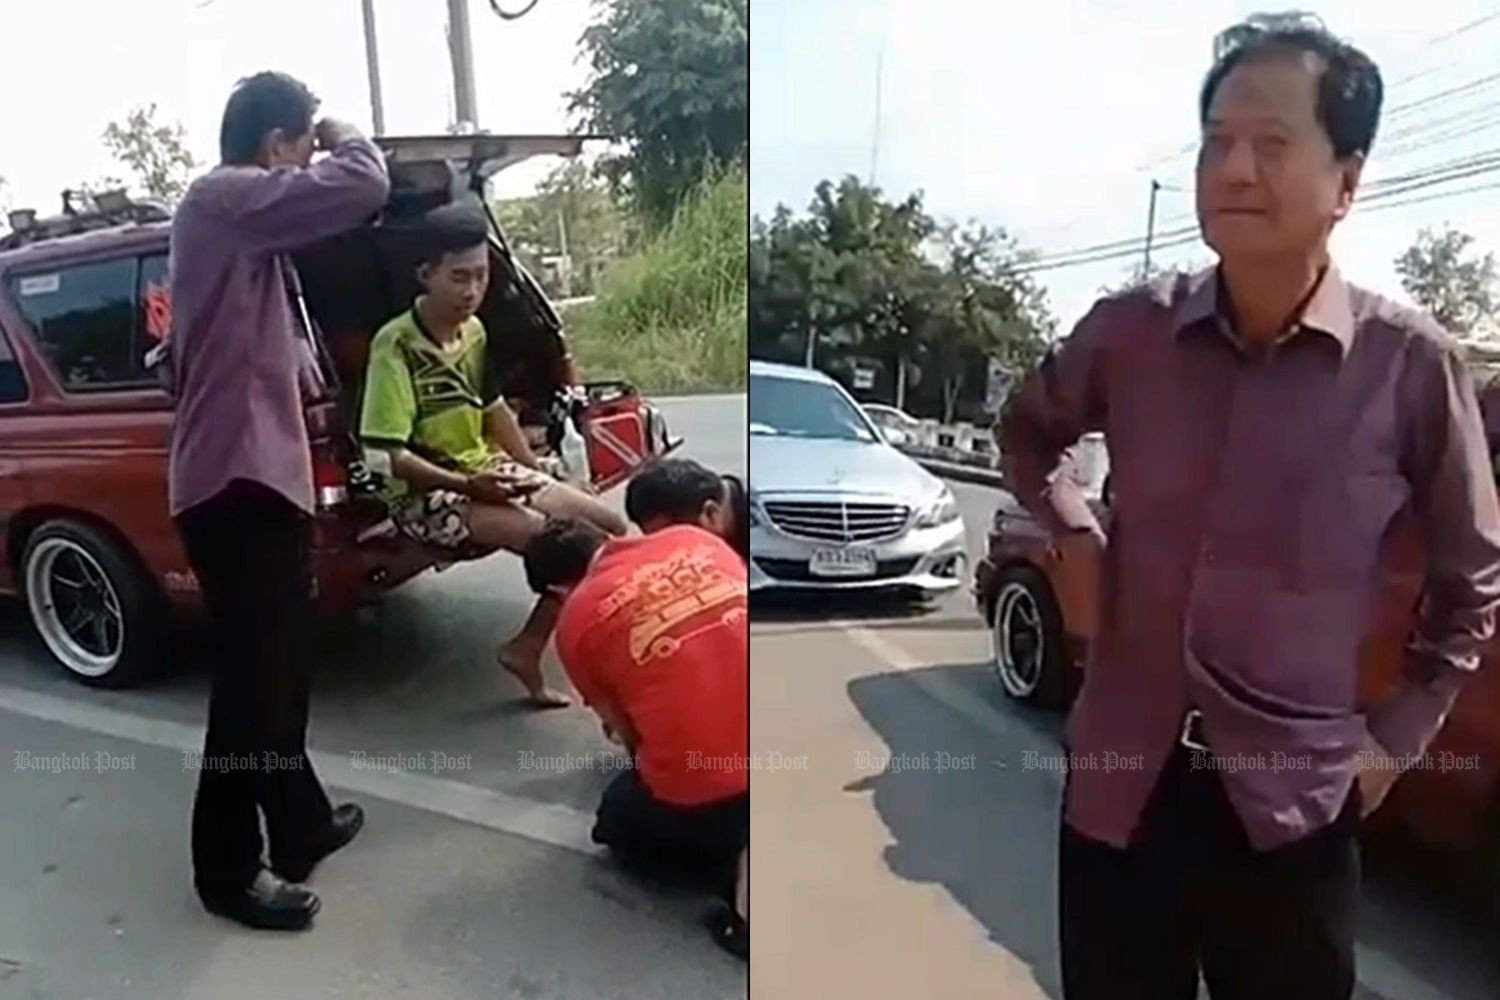 Former cabinet minister Thawee Kraikupt looks on as rescuers tend to a young motorcyclist whose bike was struck by his Mercedes on Saturday in Photharam district of Ratchaburi. (Photo supplied by Saichon Srinuanchan)